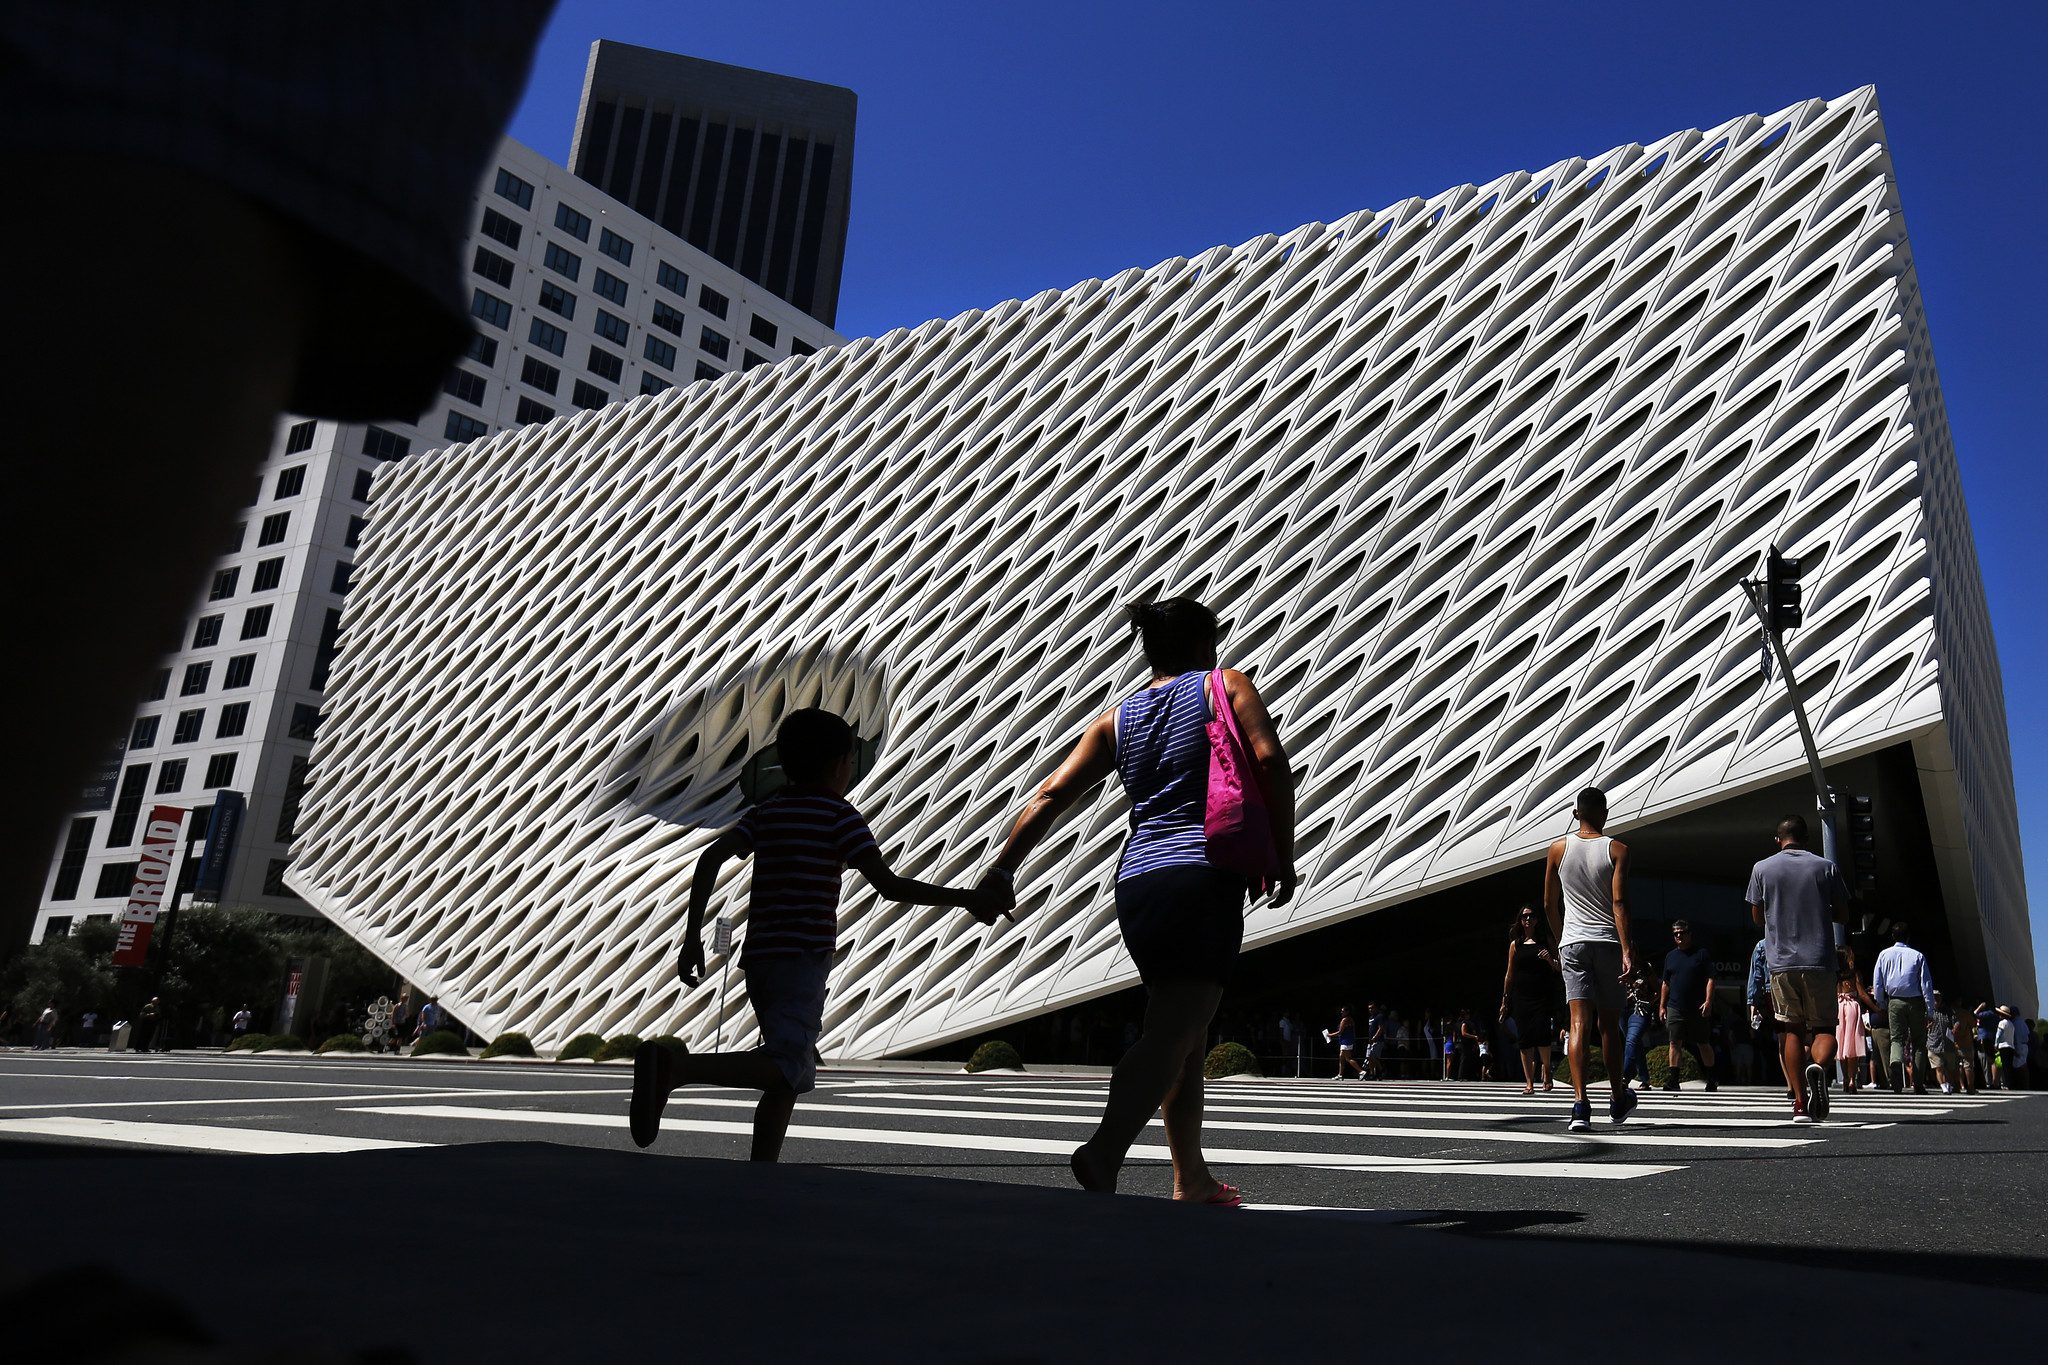 LOS ANGELES, CA. — SUNDAY, SEPTEMBER 20, 2015 — The Broad, Los Angeles' new contemporary art muse